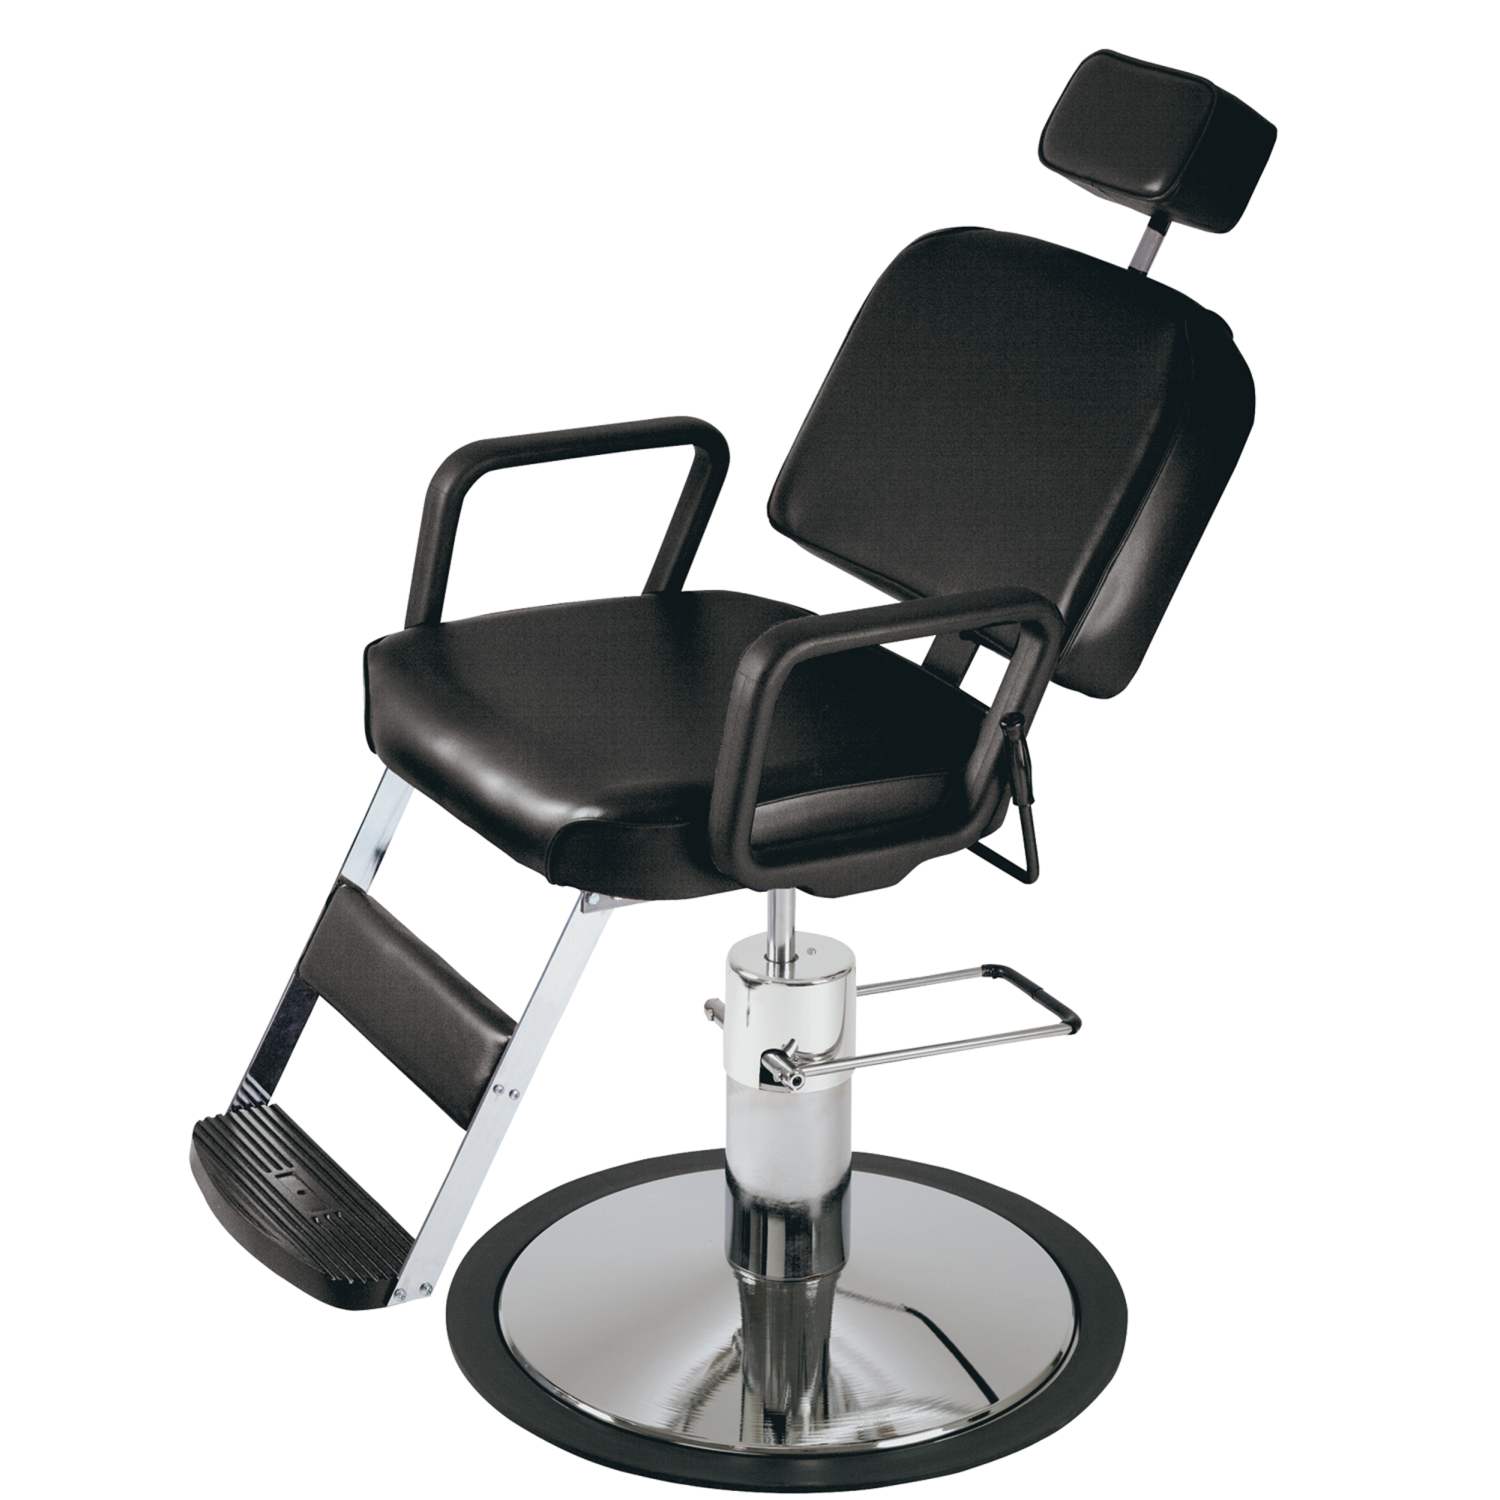 Prince barber chair 4391 for Beauty salon furniture suppliers